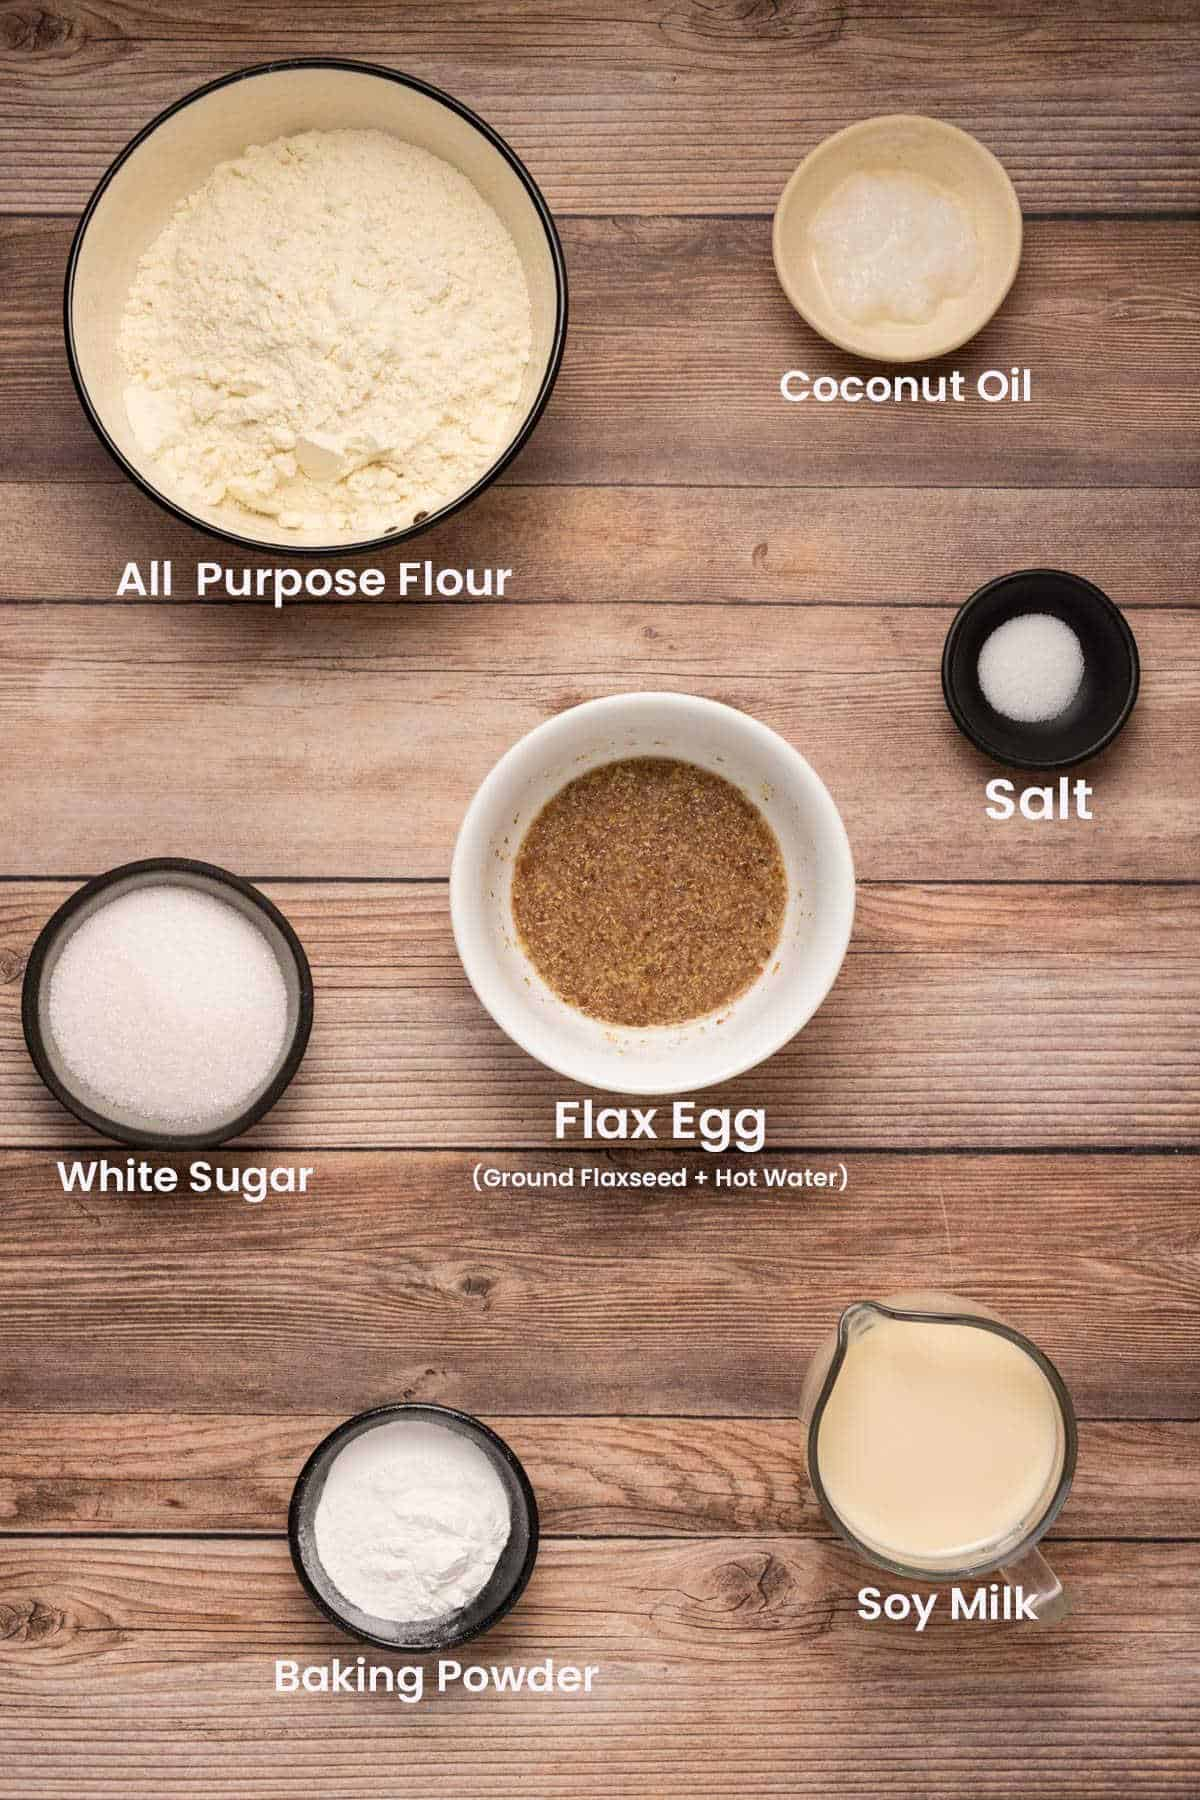 Photo of the ingredients needed to make pancakes.